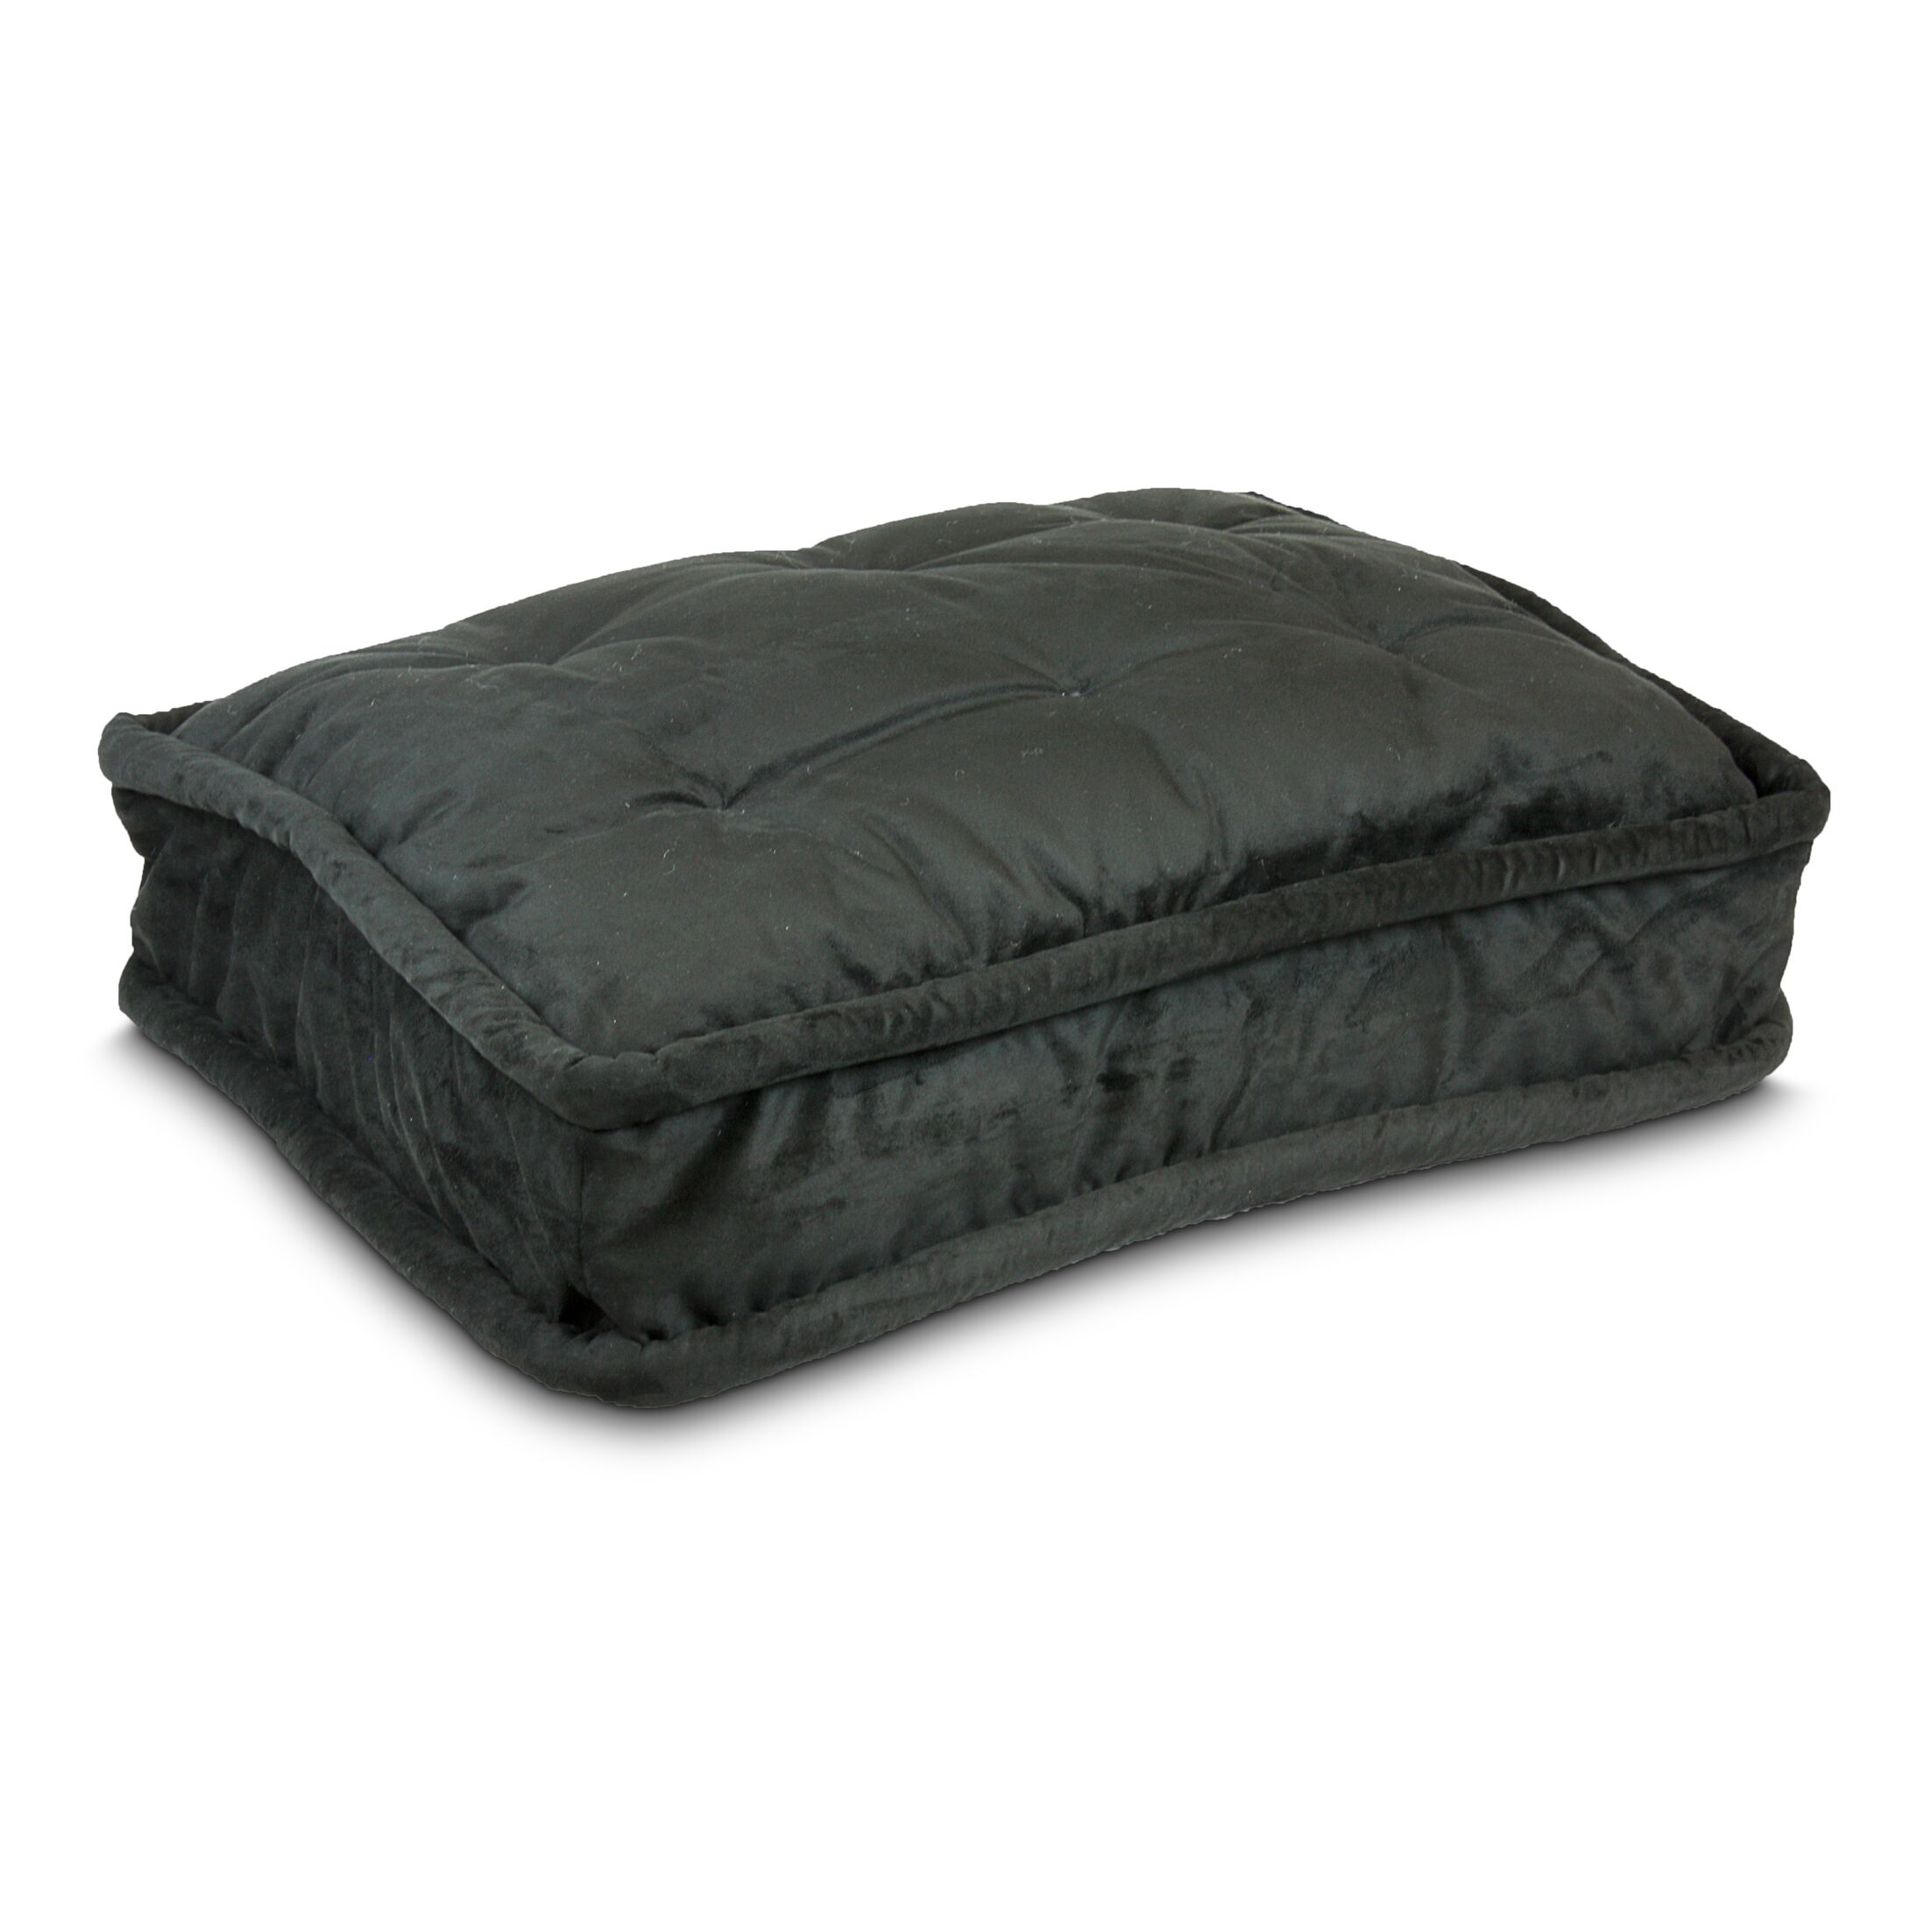 Luxury Pillow Top Pet Bed Color: Black, Size: Extra Large - 42